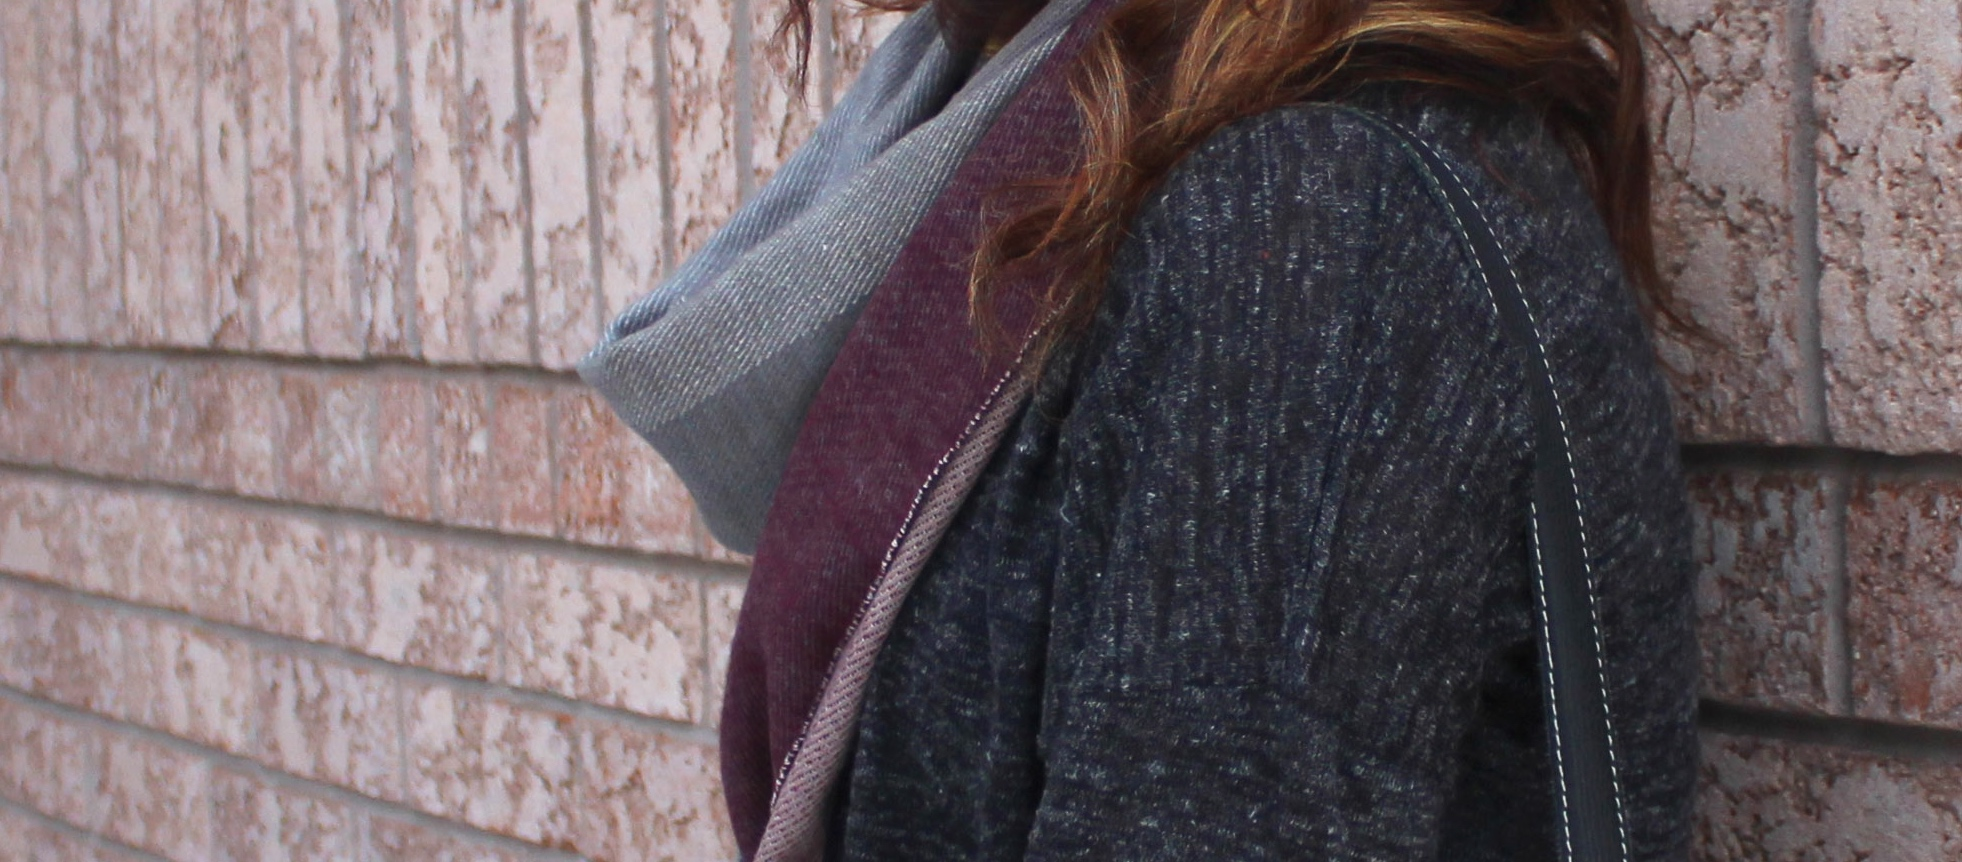 Effortless Winter Uniform - LOFT Cords, Cardigan, Cozy Scarf